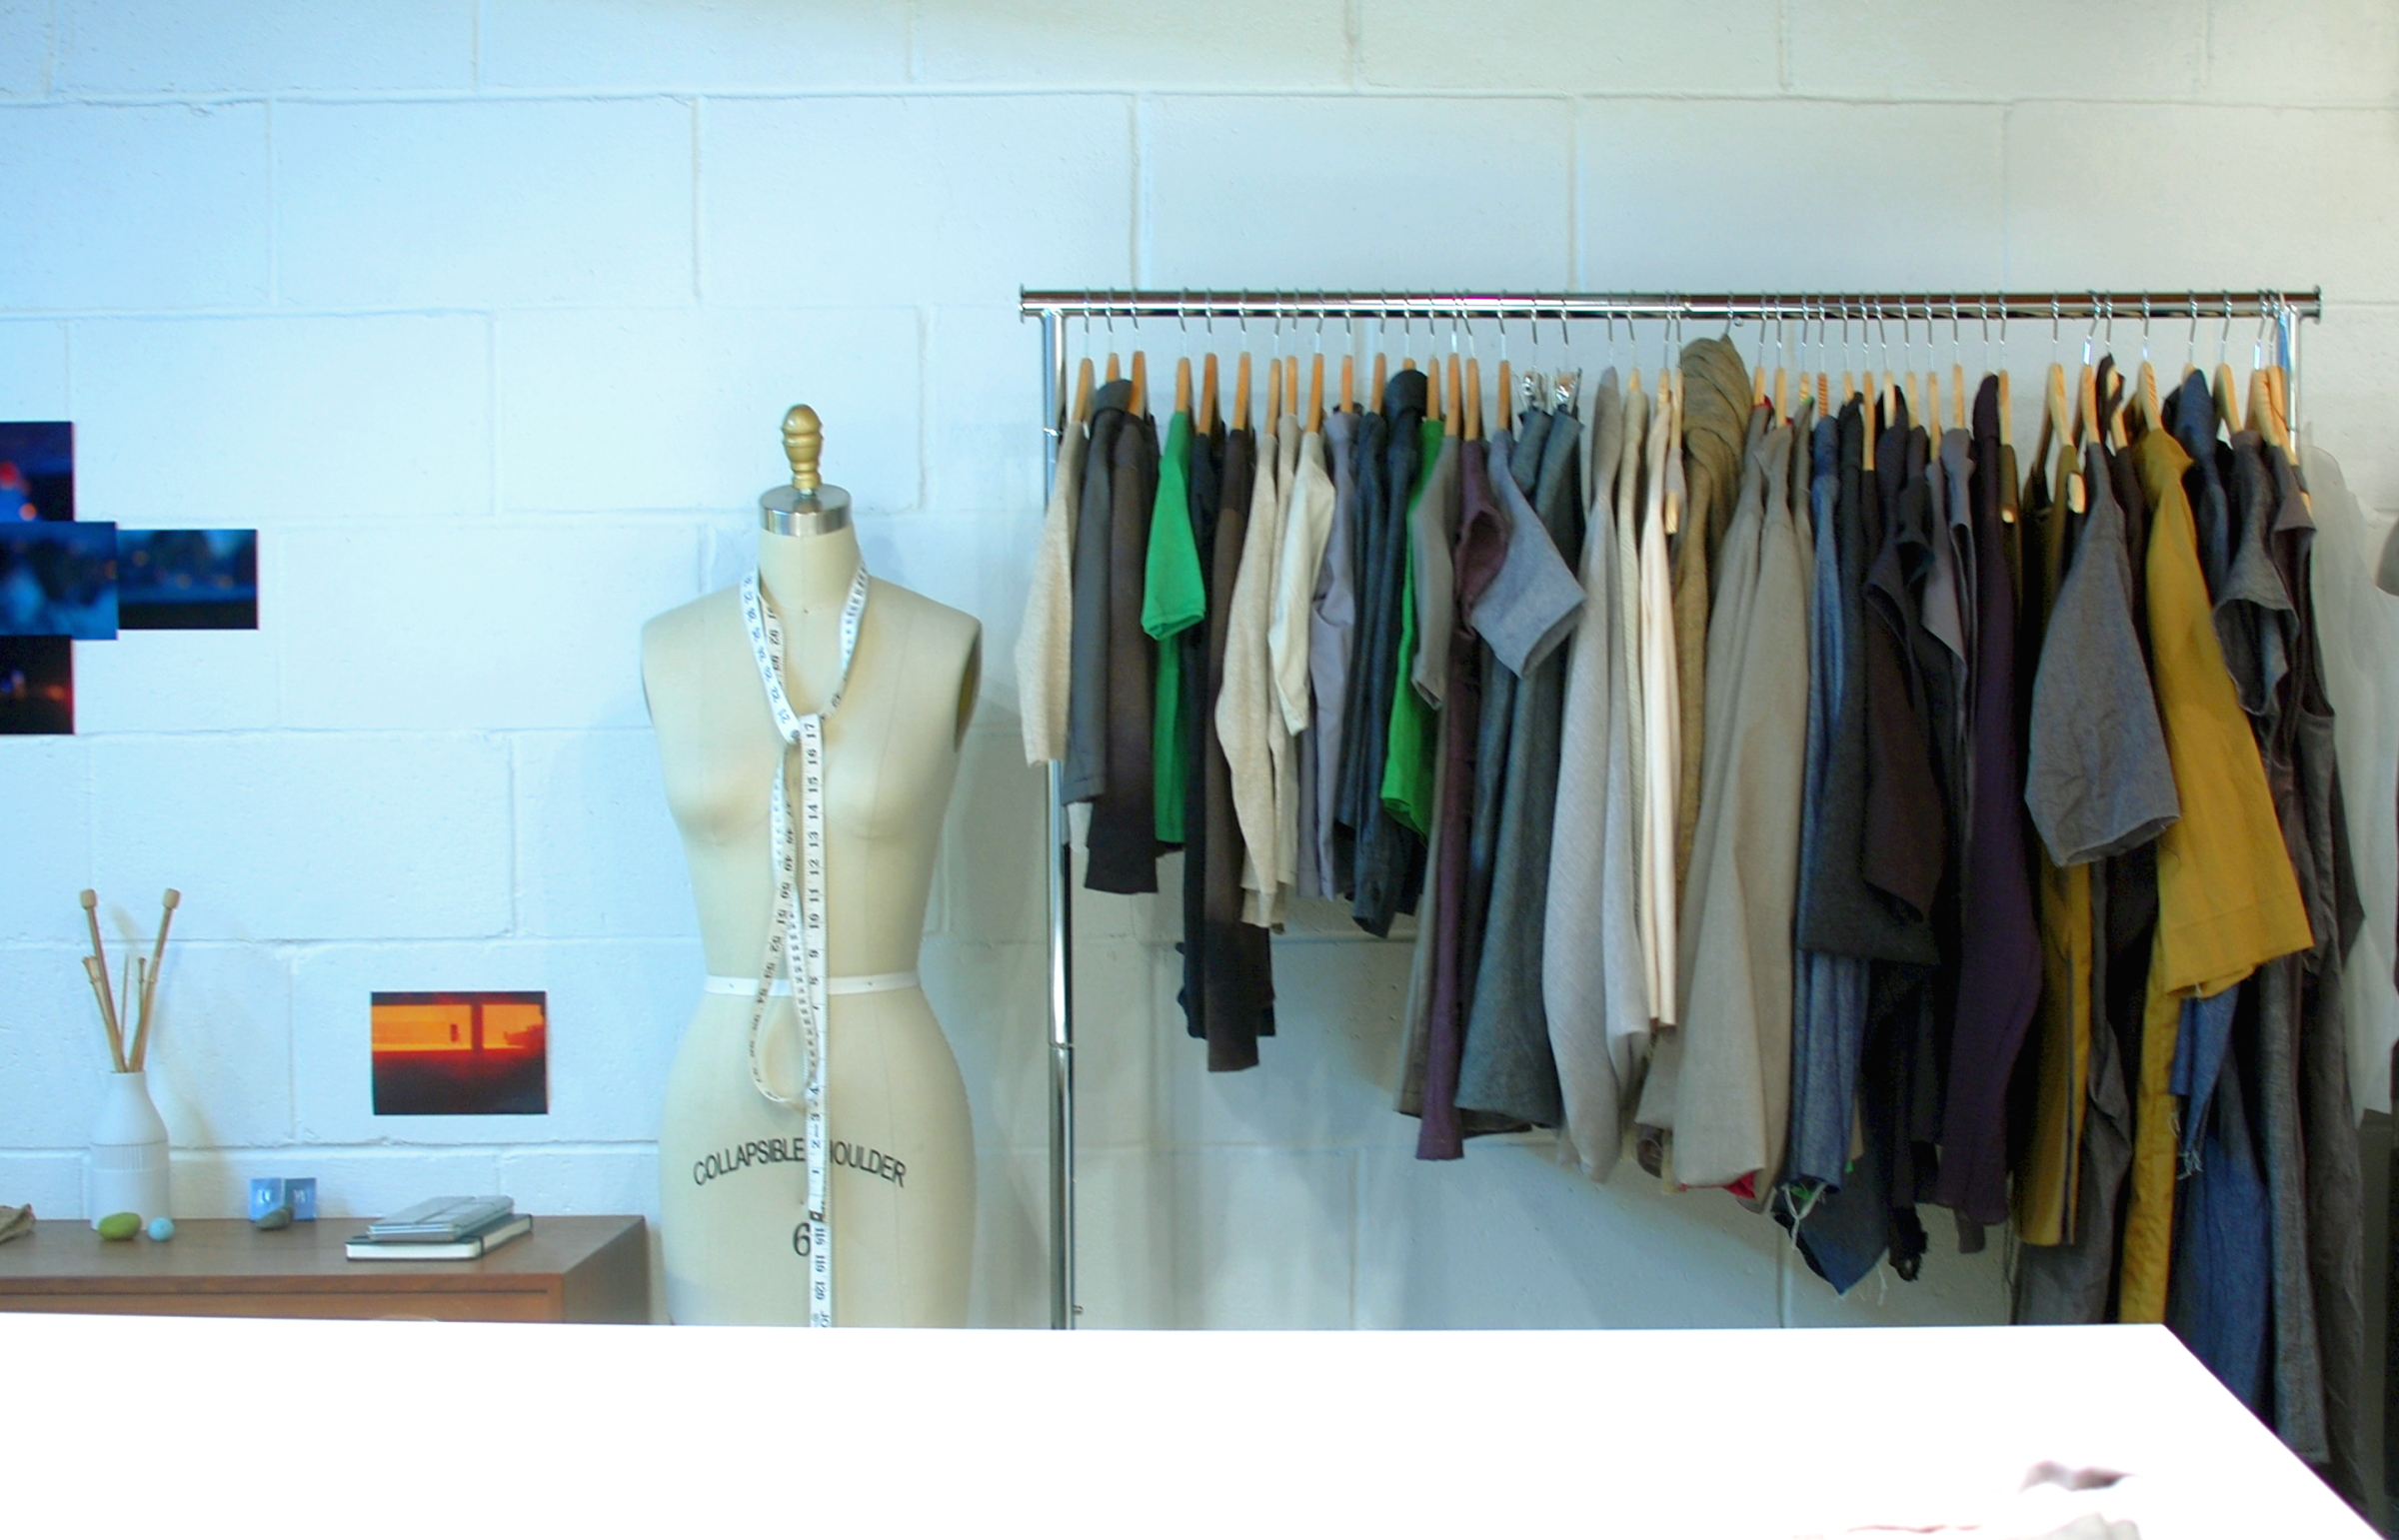 Image: UNIFORM STUDIO